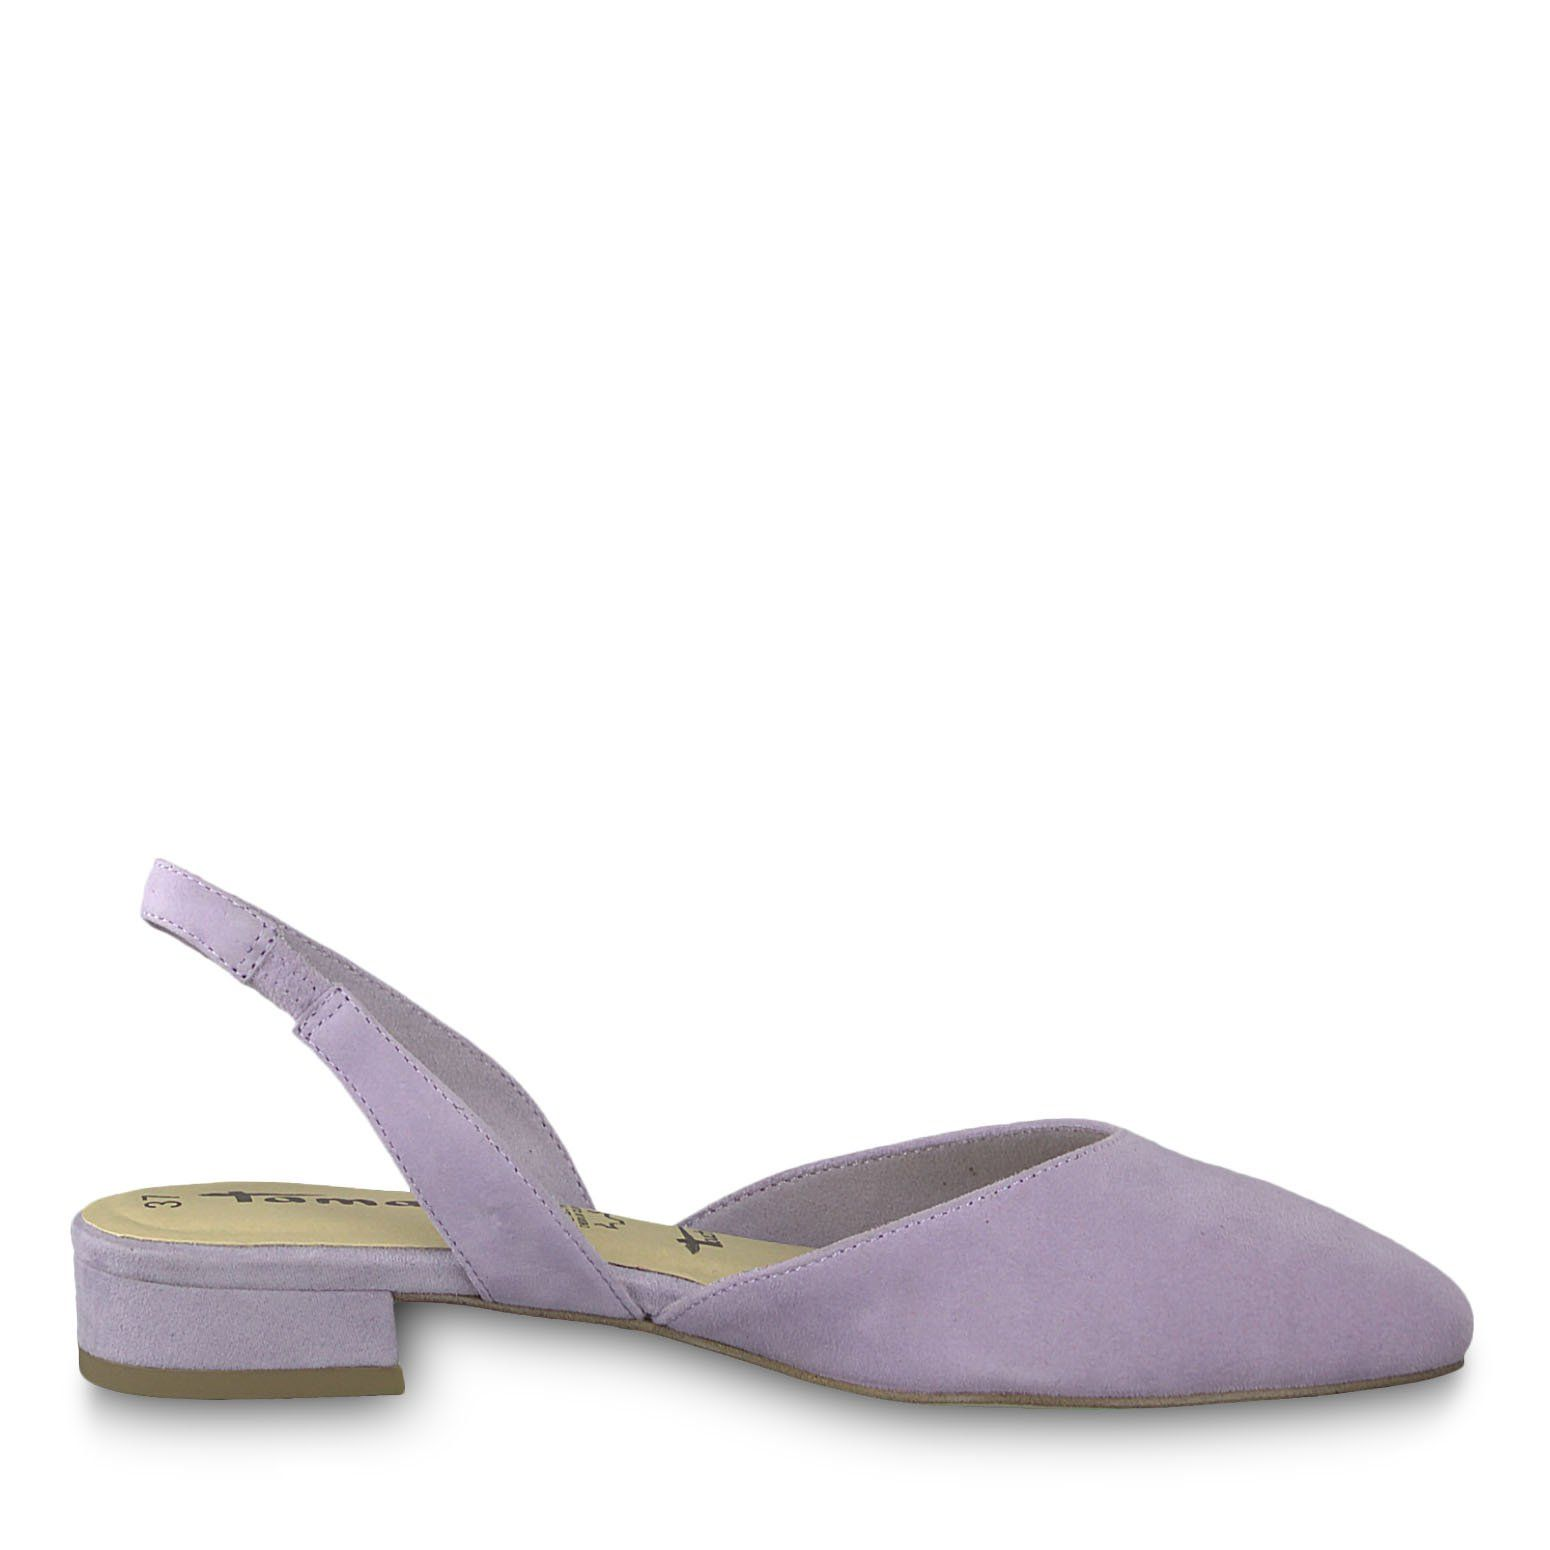 Malou Slingpumps in 2019 | Sommer 2019 | Shoes, Heeled mules